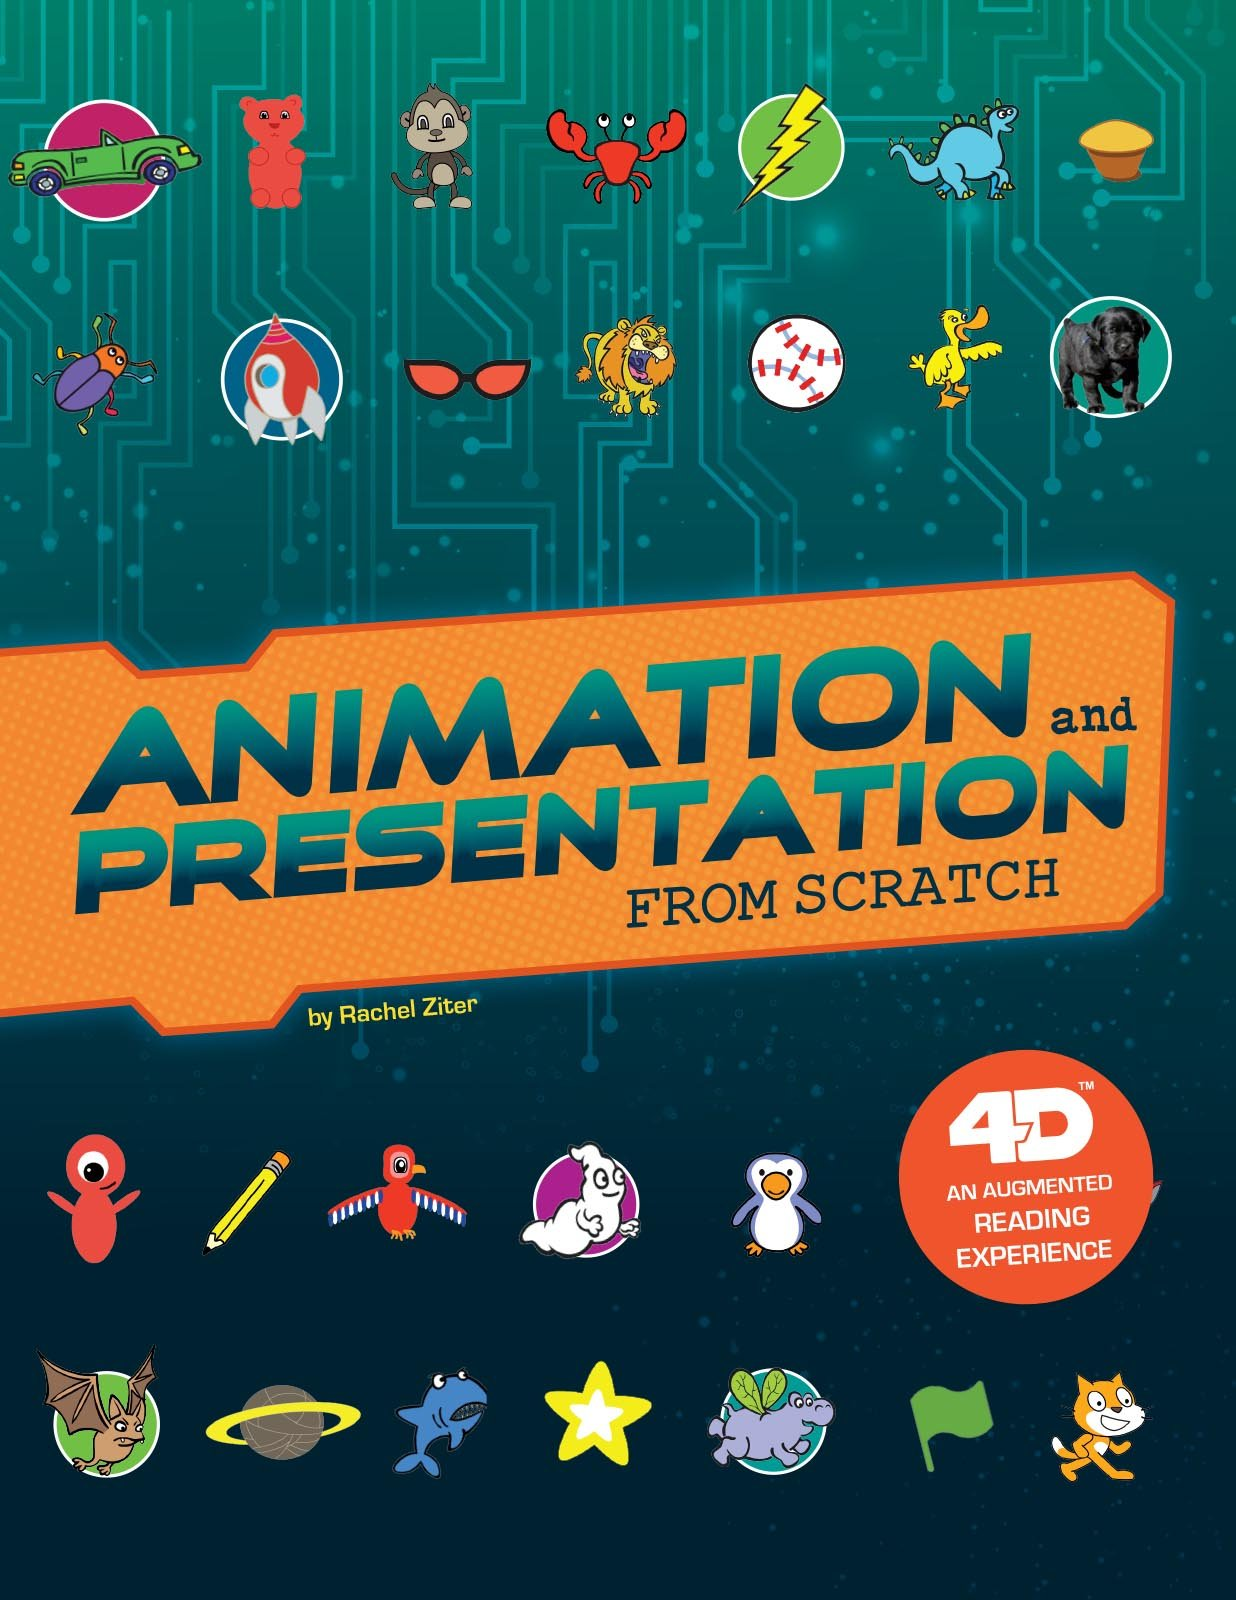 Animation and Presentation from Scratch: 4D An Augmented Reading Experience (Code It Yourself 4D) by Capstone Press